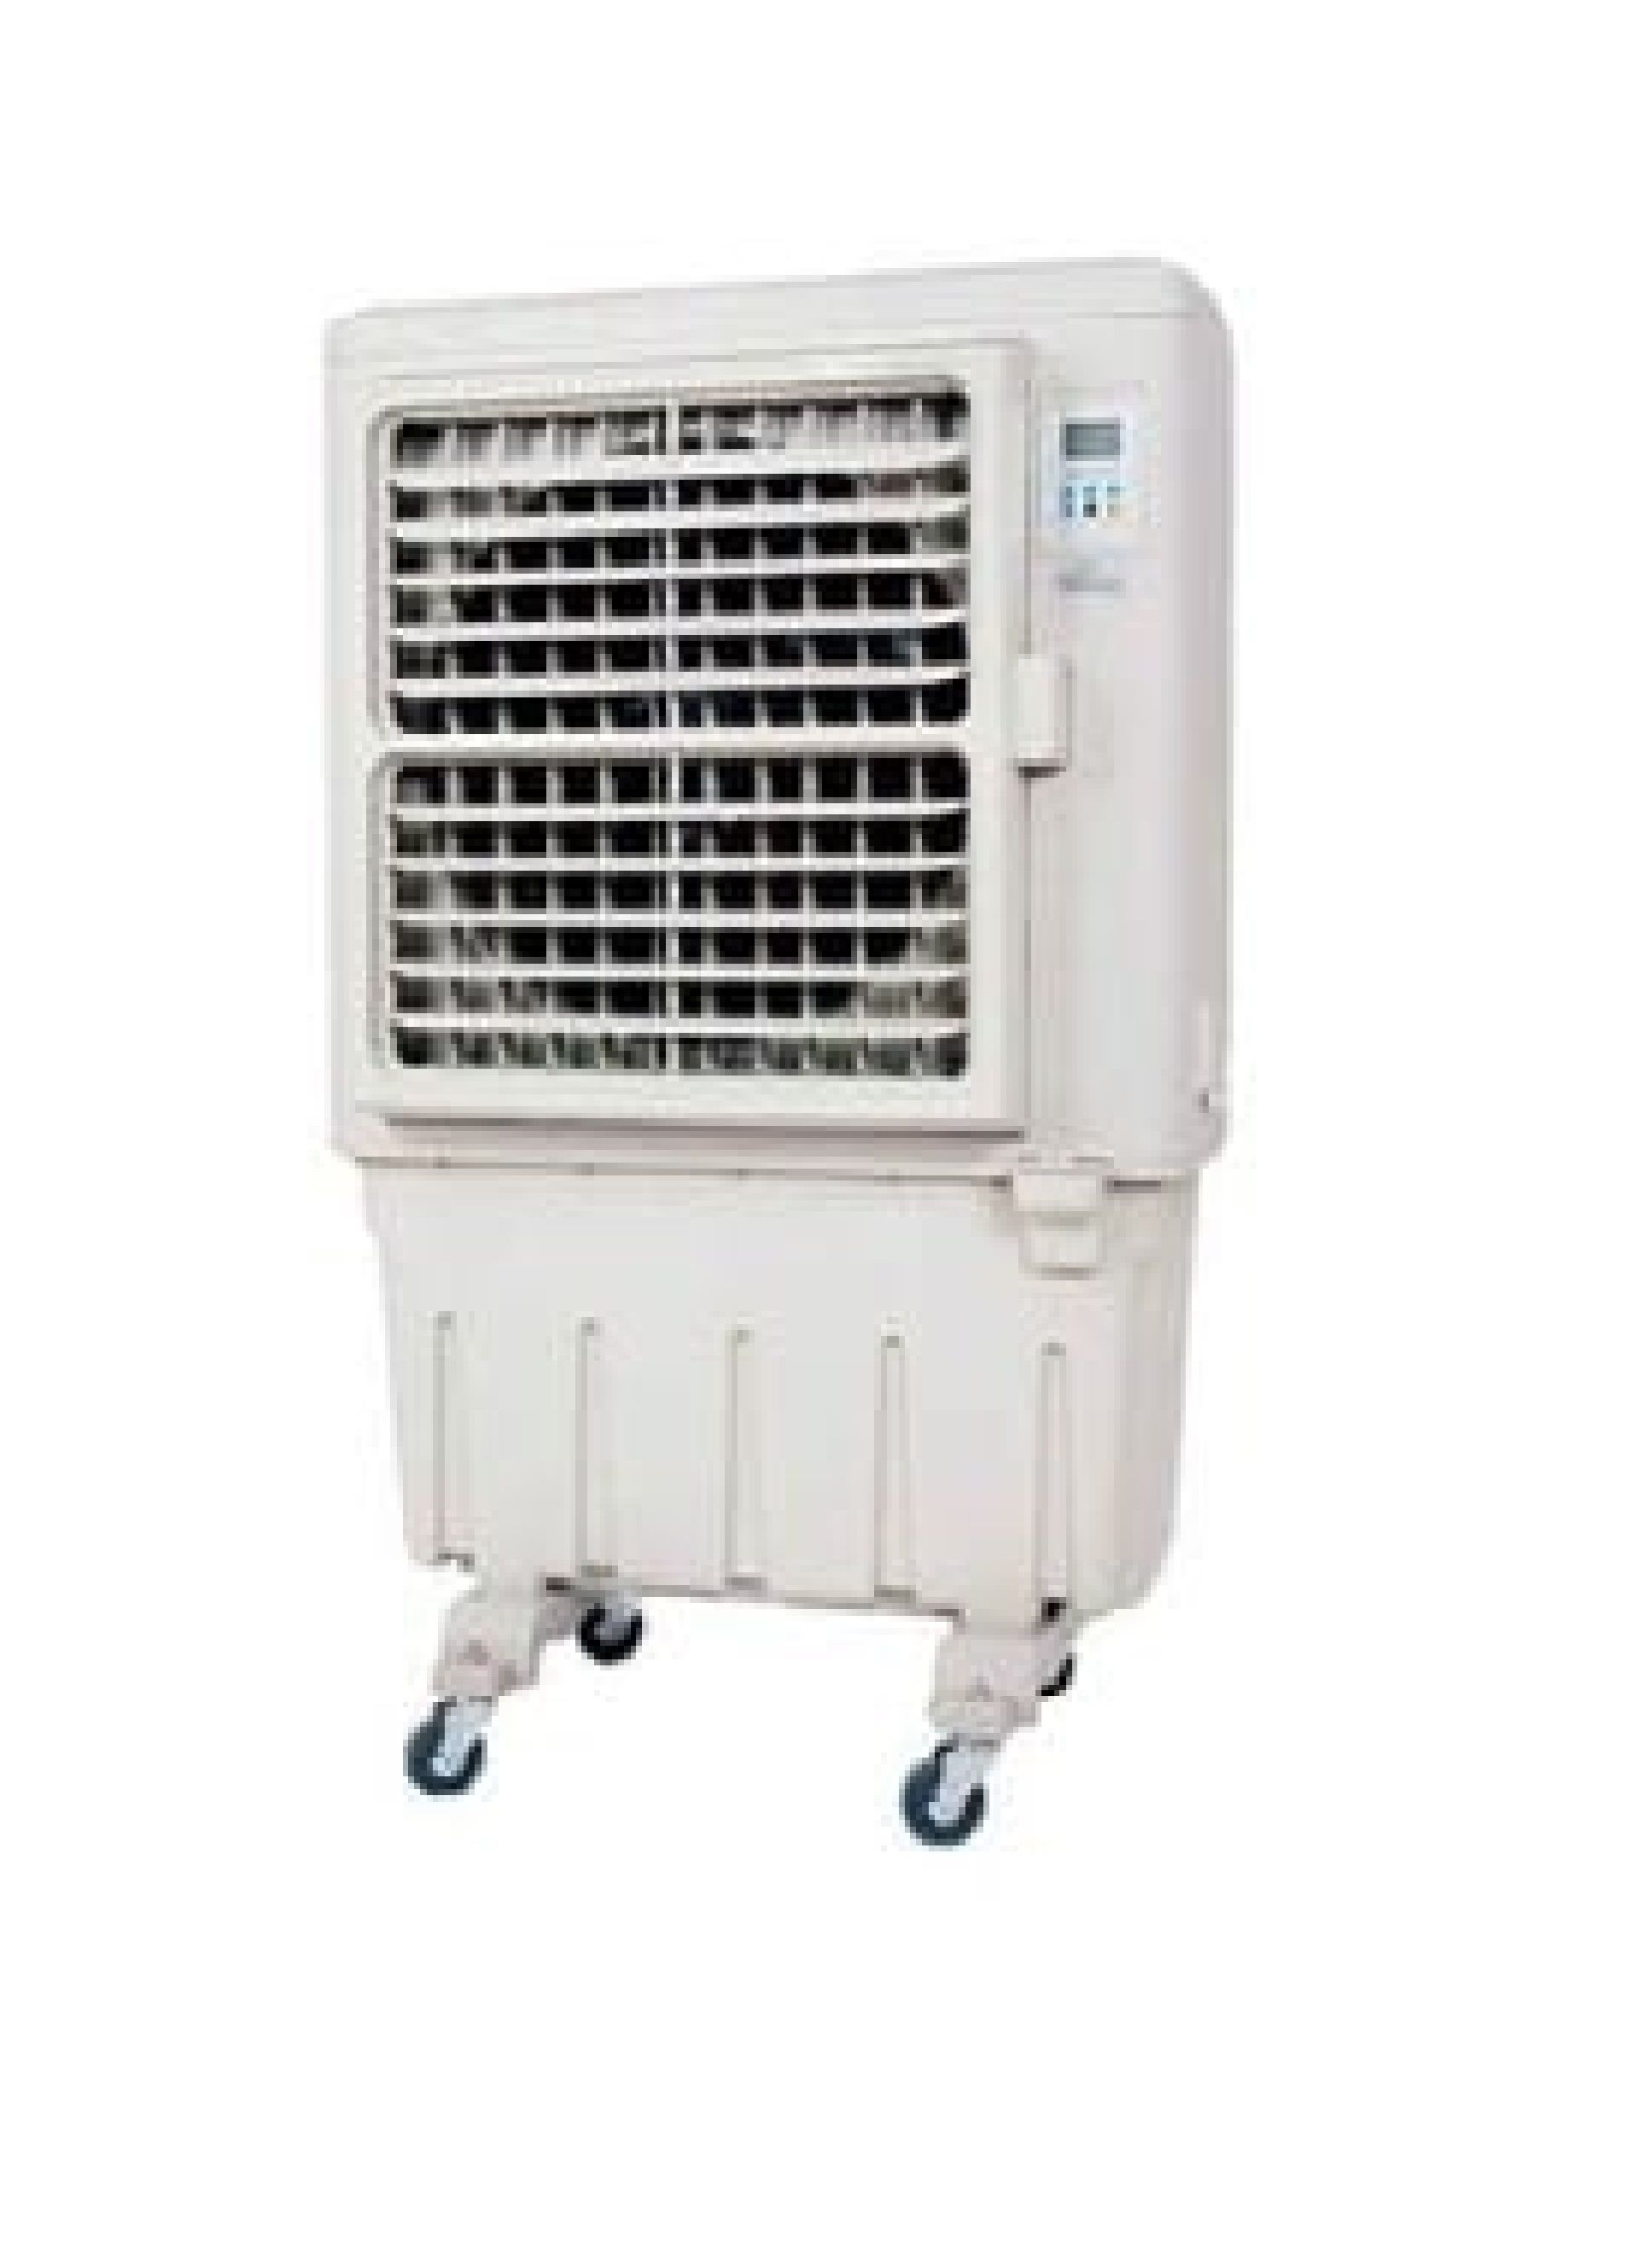 Hyd 8000 Portable Outdoor Air Cooler Conditioner Hydrocool Uae Air Cooler Decorating Tips Rental Decorating Tips